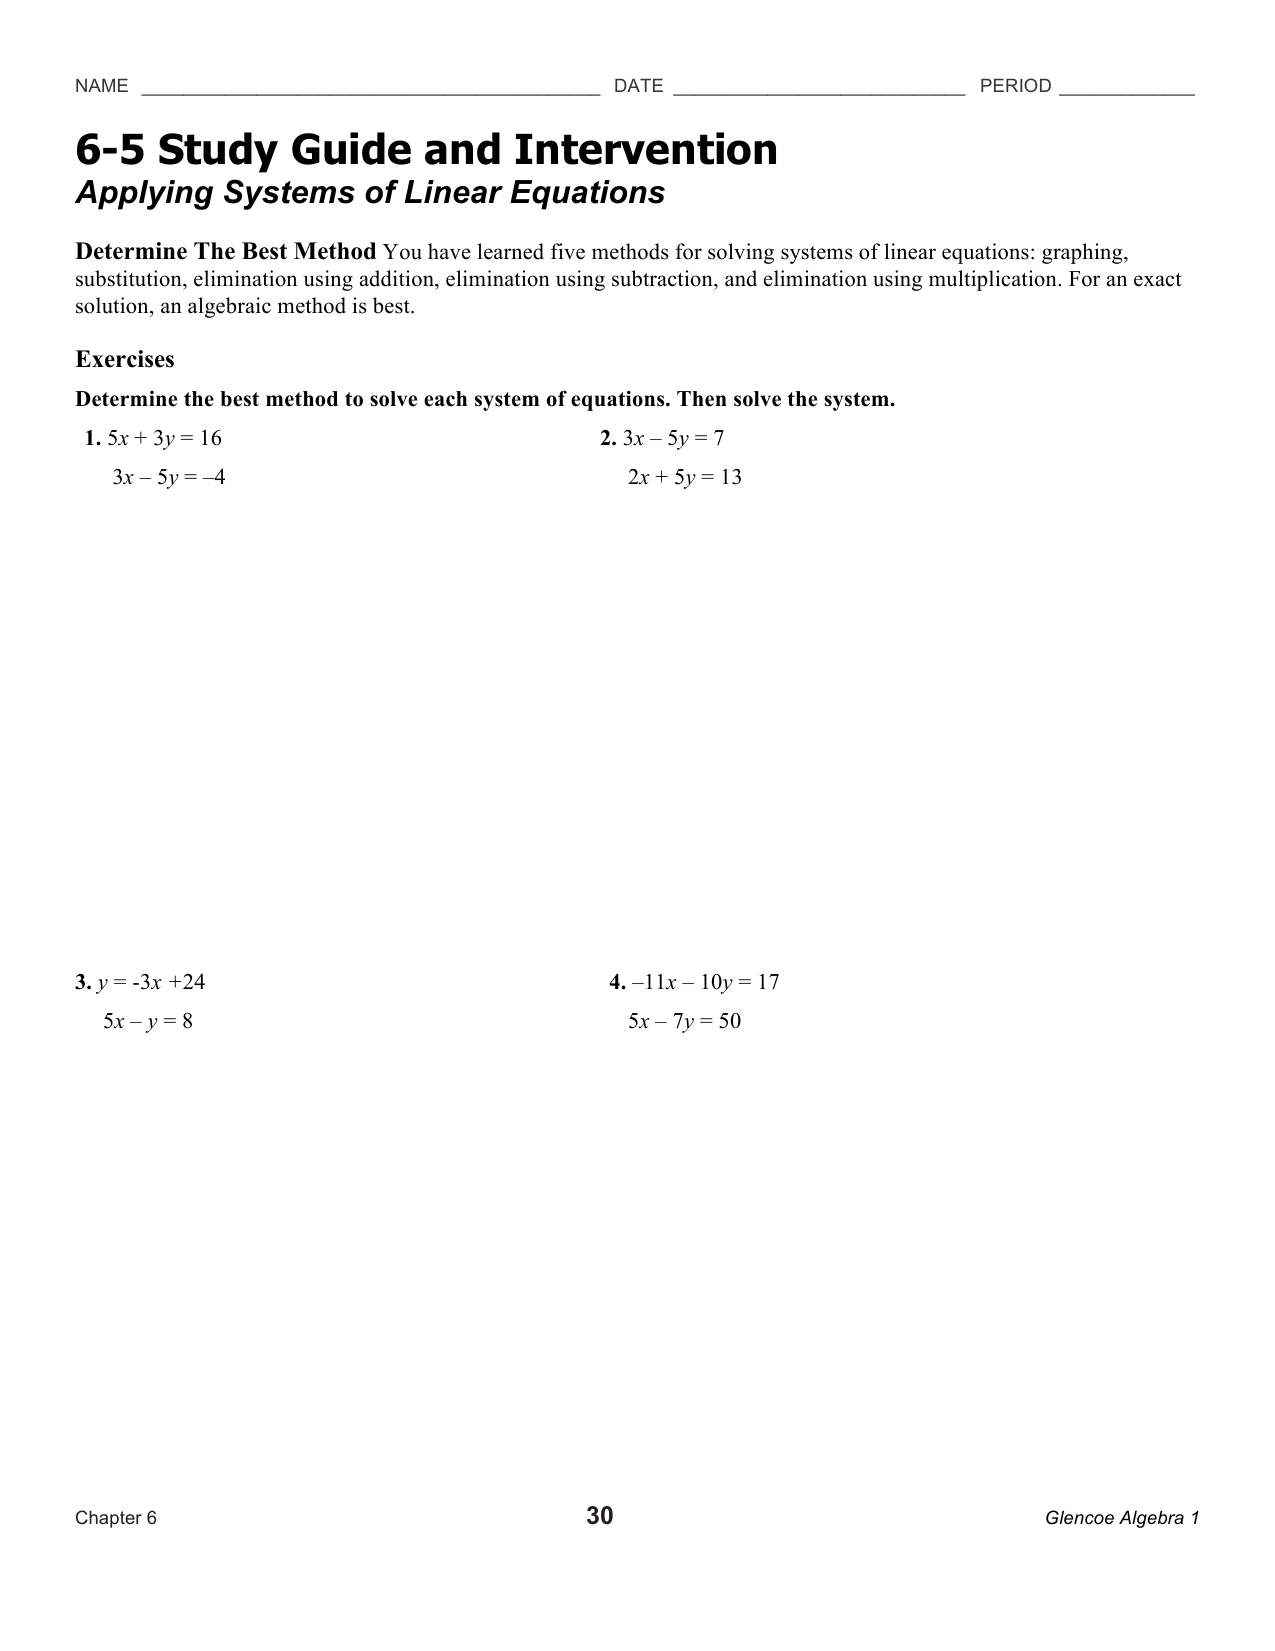 6-5 Study Guide and Intervention Applying Systems of Linear